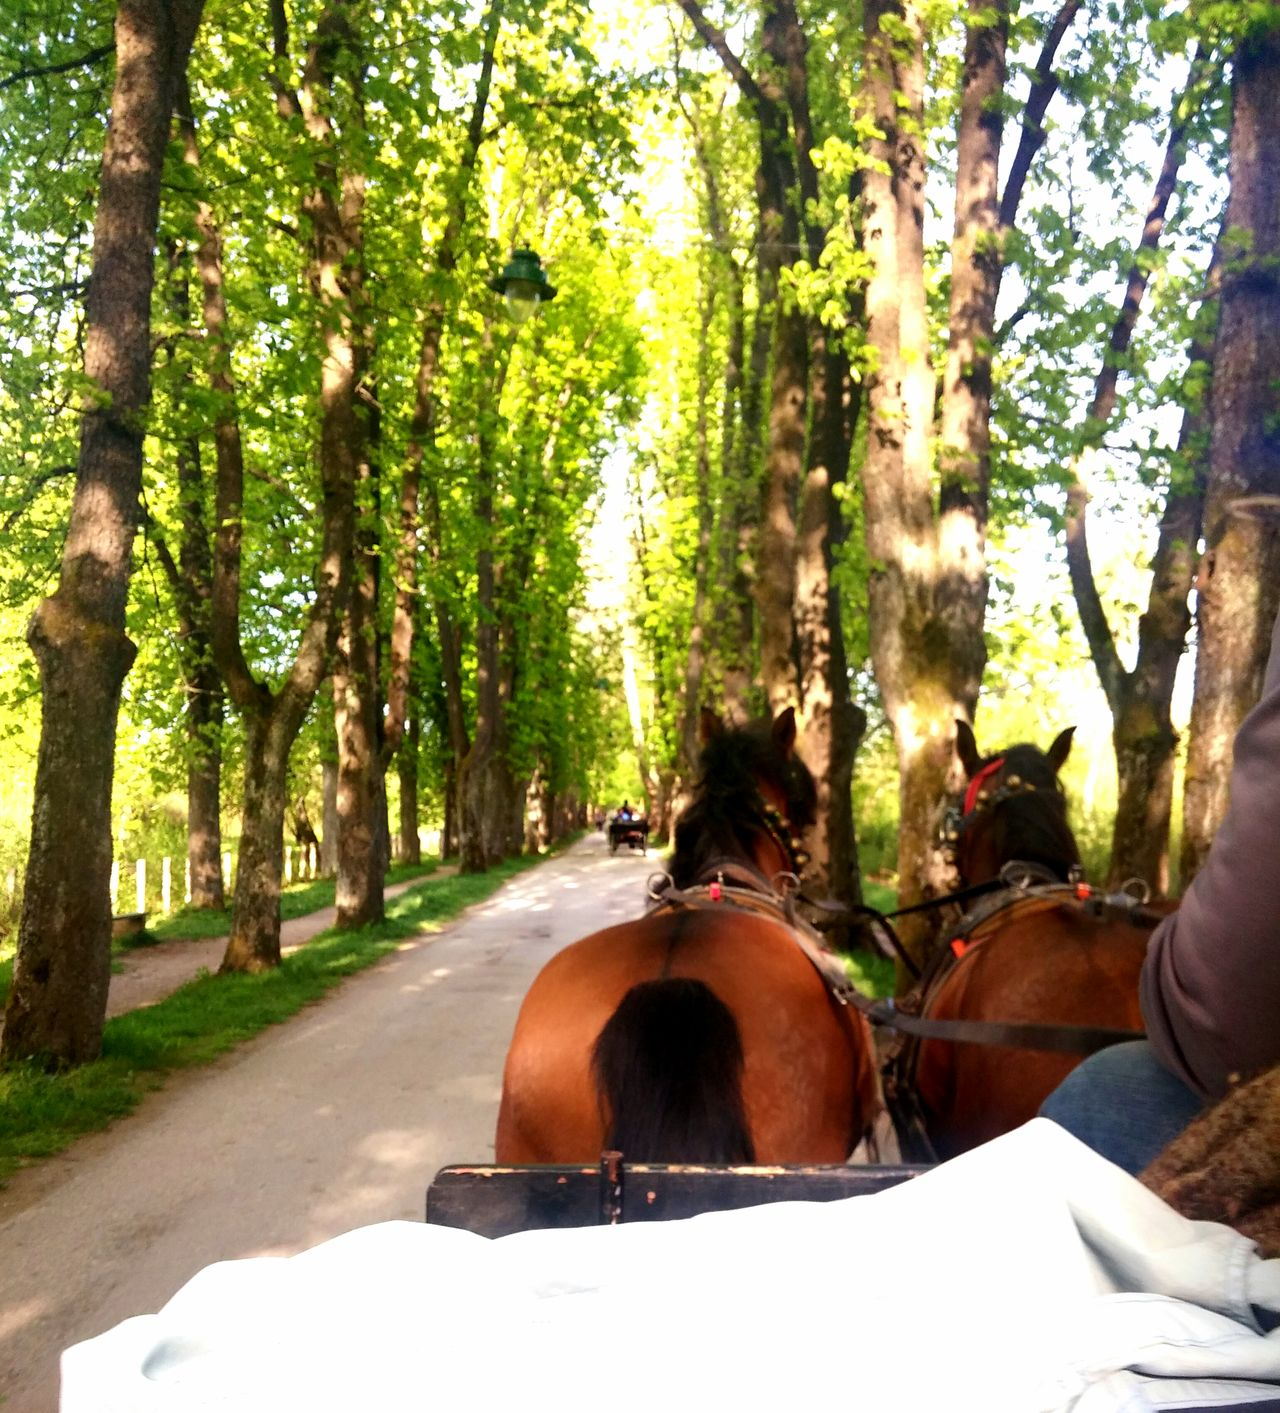 Carriage ride Horses Carriage Showcase April Spring Beautiful Sunny Day Nature Photography In Motion First Person View Art Vibrant Colorful Heavenly Time With Babe Tree Line Tree Lover